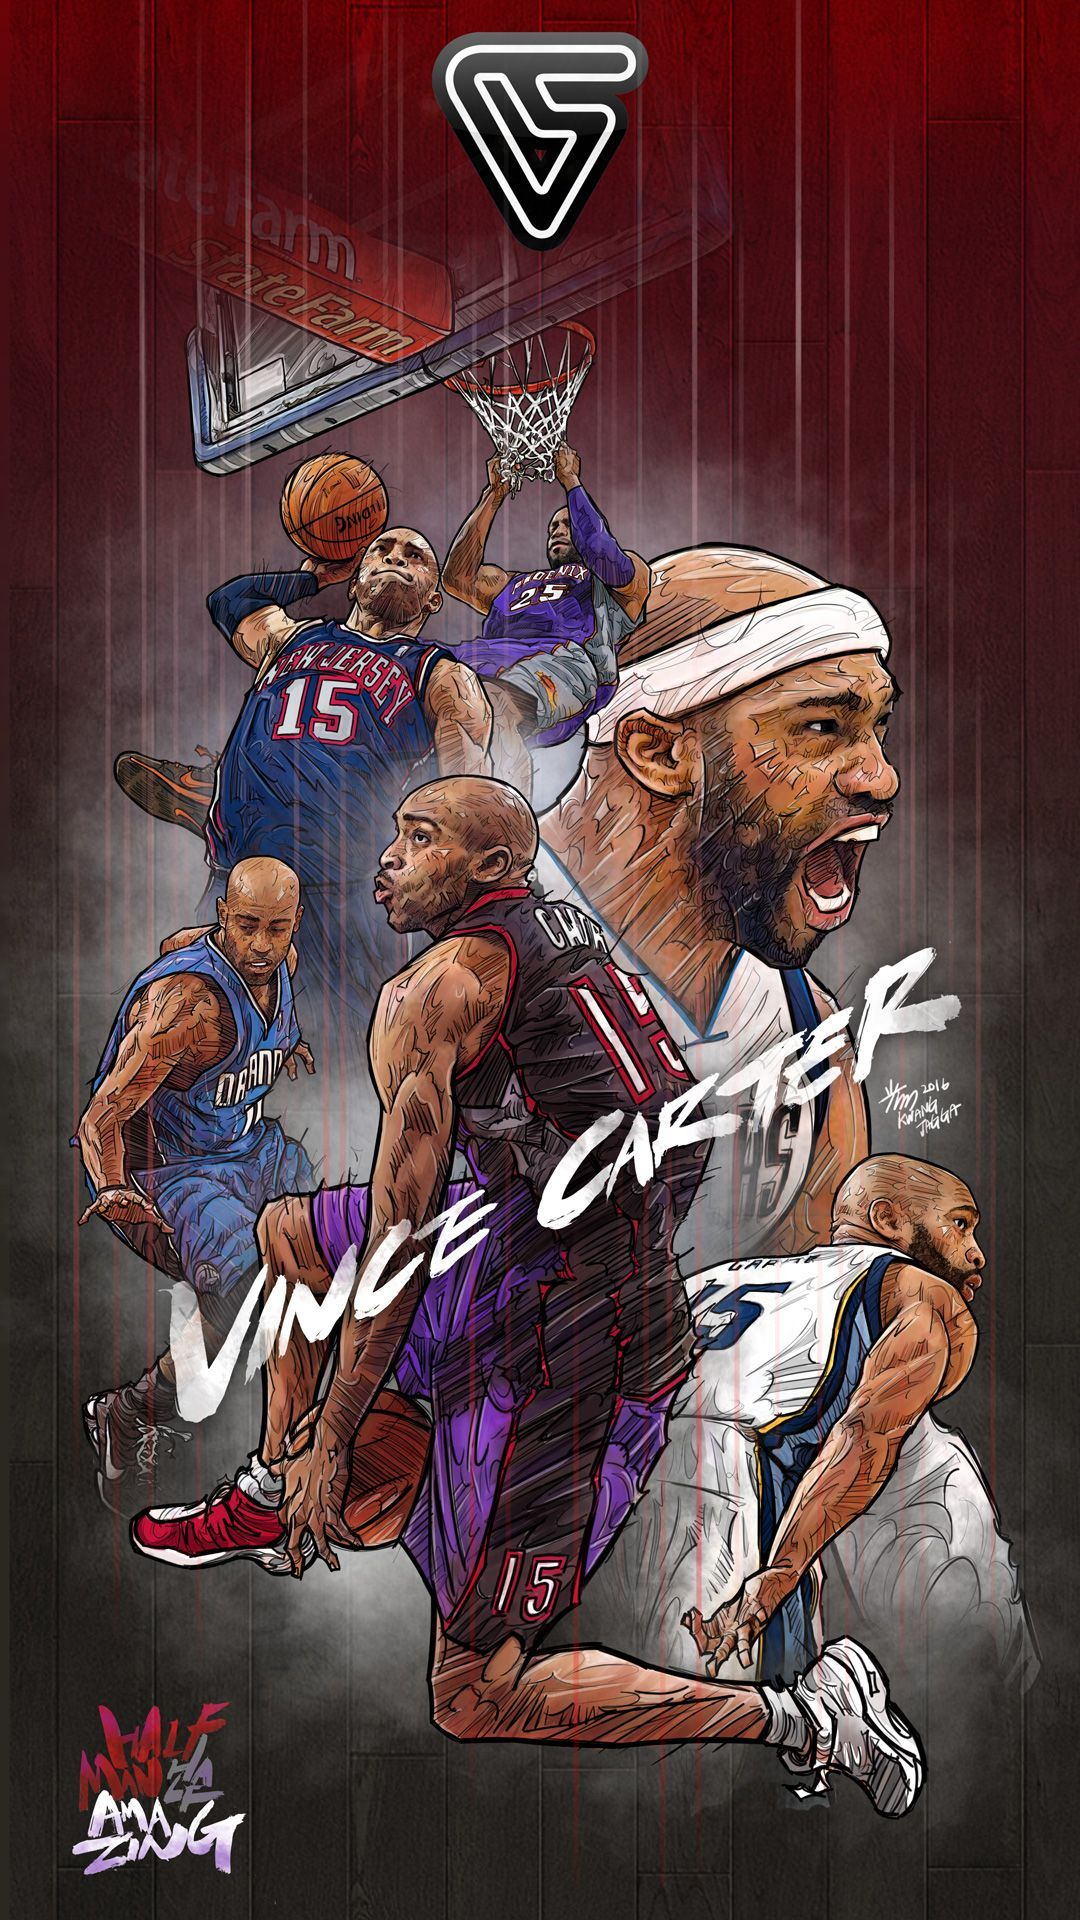 Vince Carter Forever Illustration In 2020 Nba Wallpapers Nba Basketball Art Nba Players